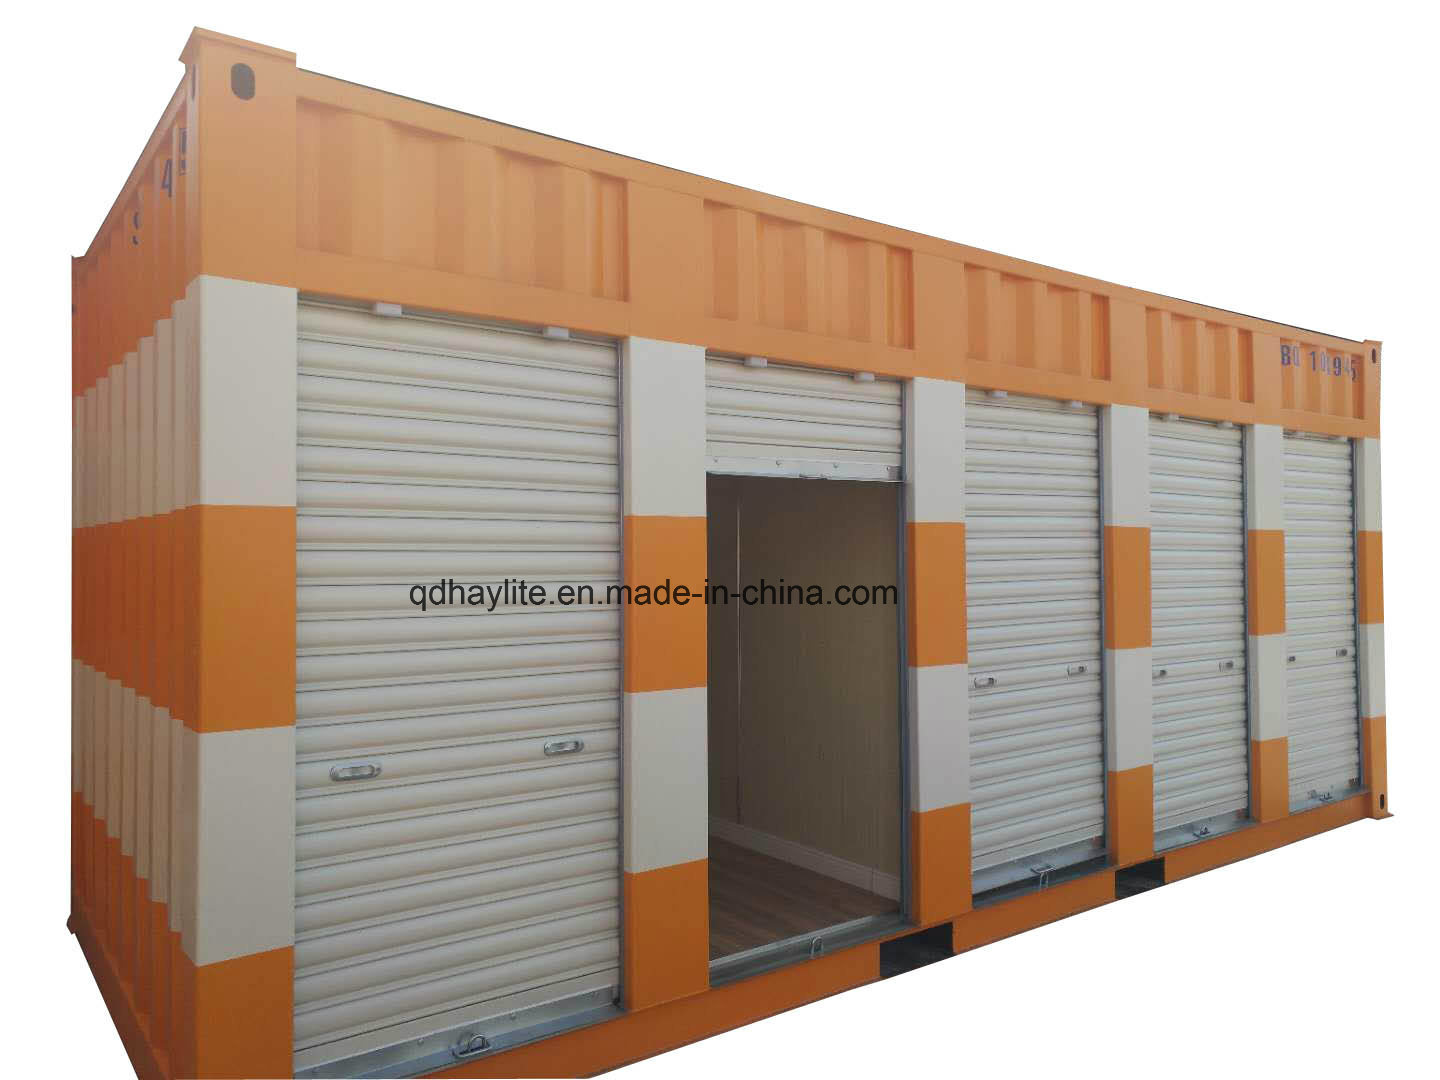 [Hot Item] ISO Container Modified 20FT Used Steel Cargo Storage Container  with Garage Doors